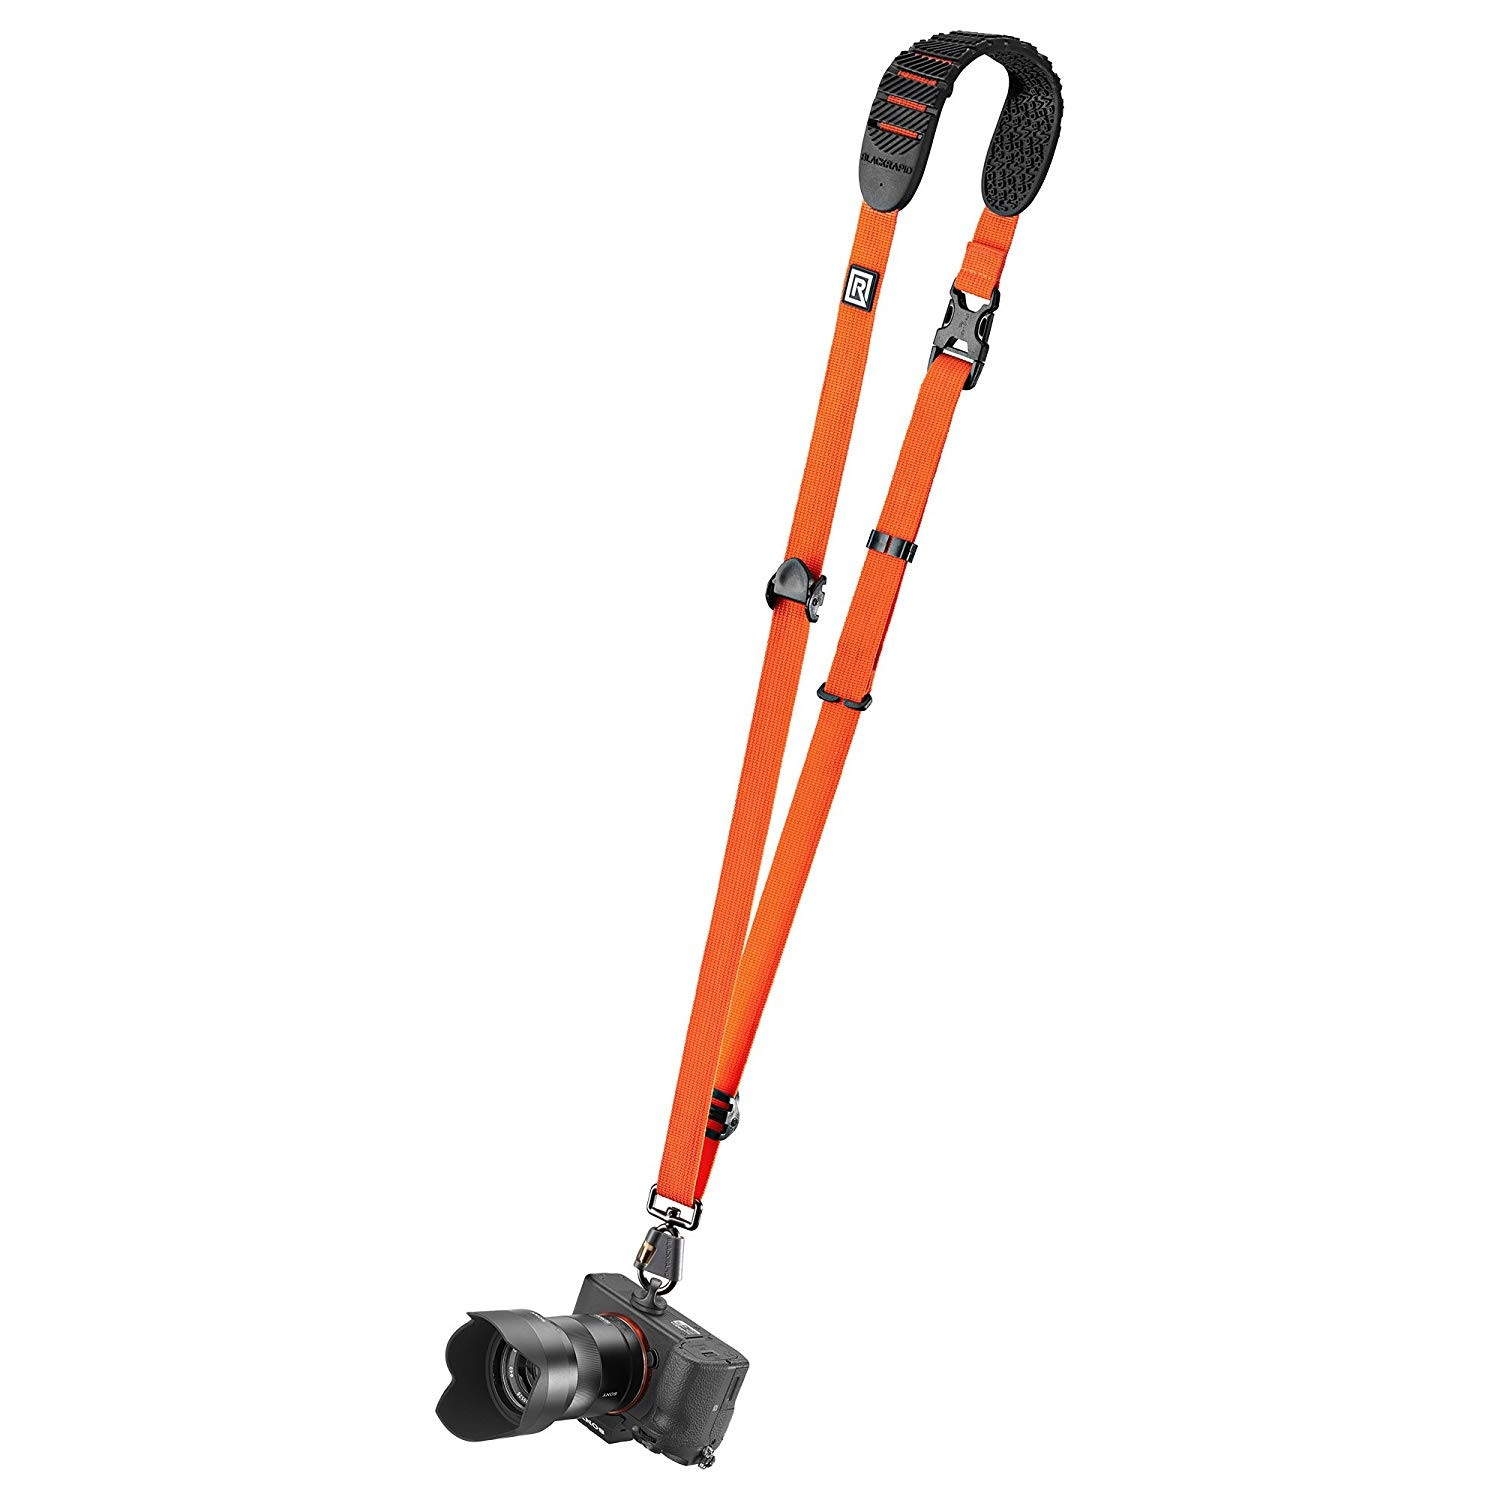 """(361002) CORREA PARA CÁMARA CRUZADA CROSS SHOT BREATHE COLOR NARANJA"""